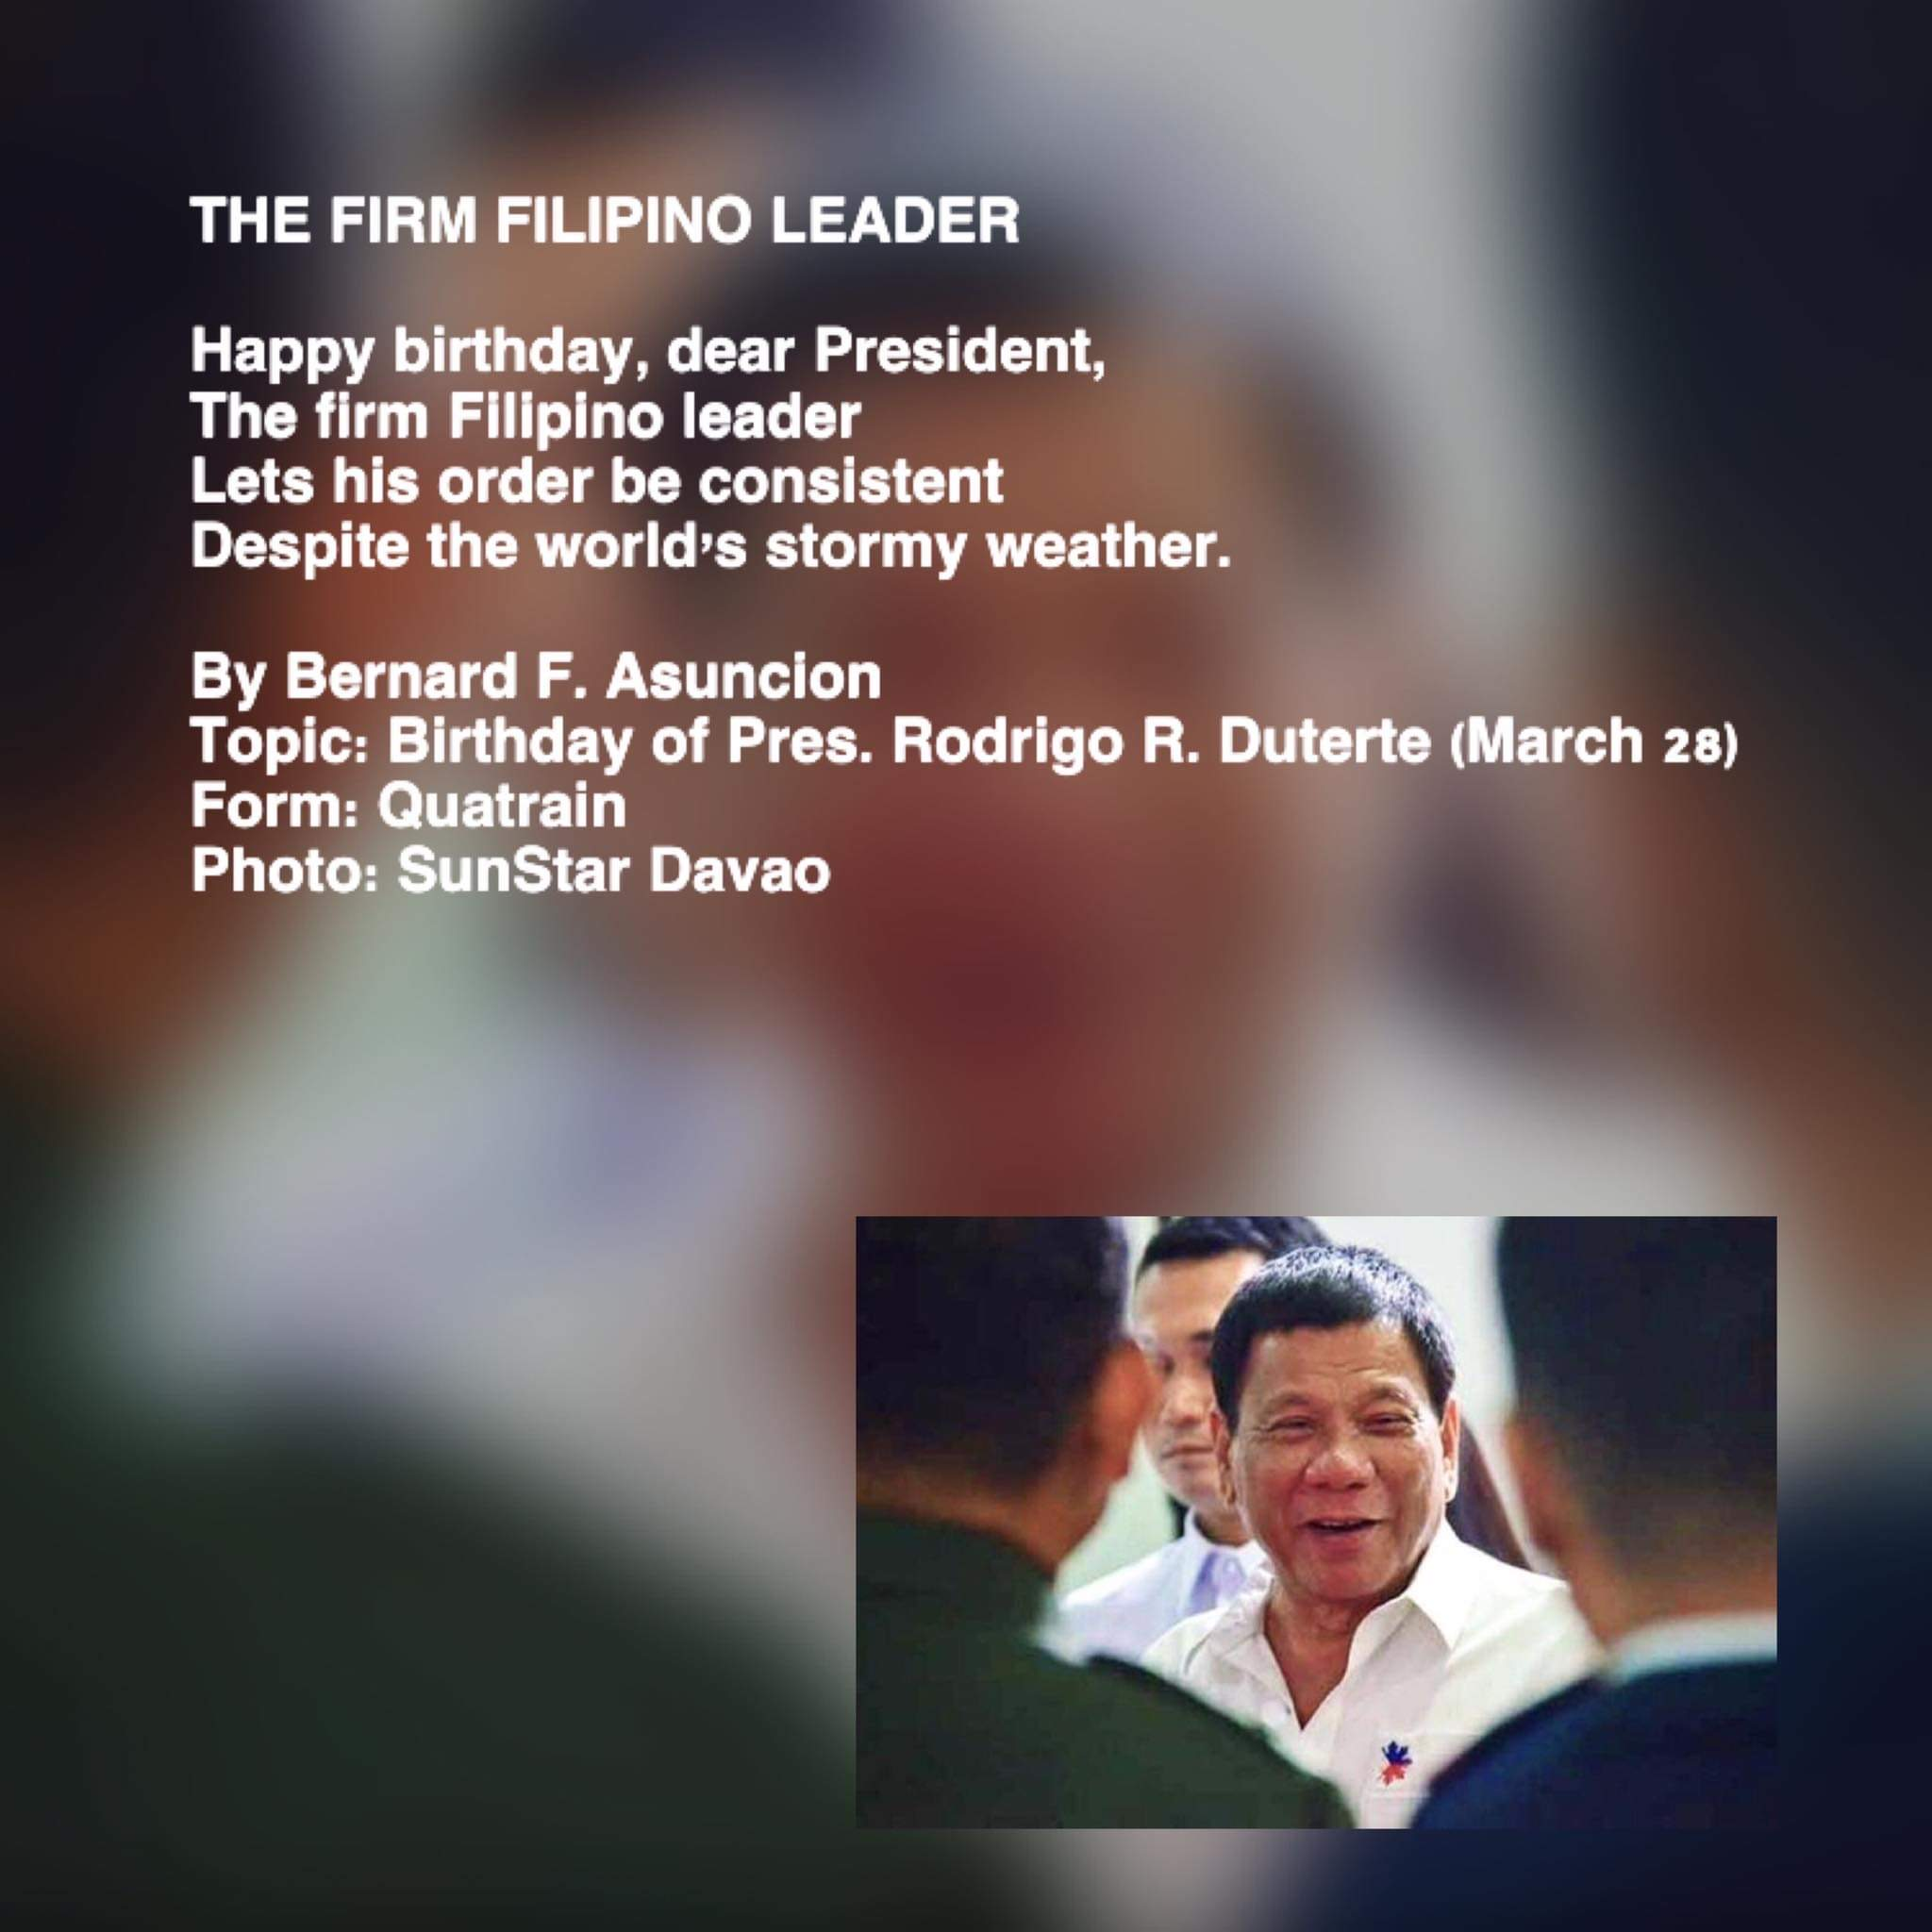 The Firm Filipino Leader